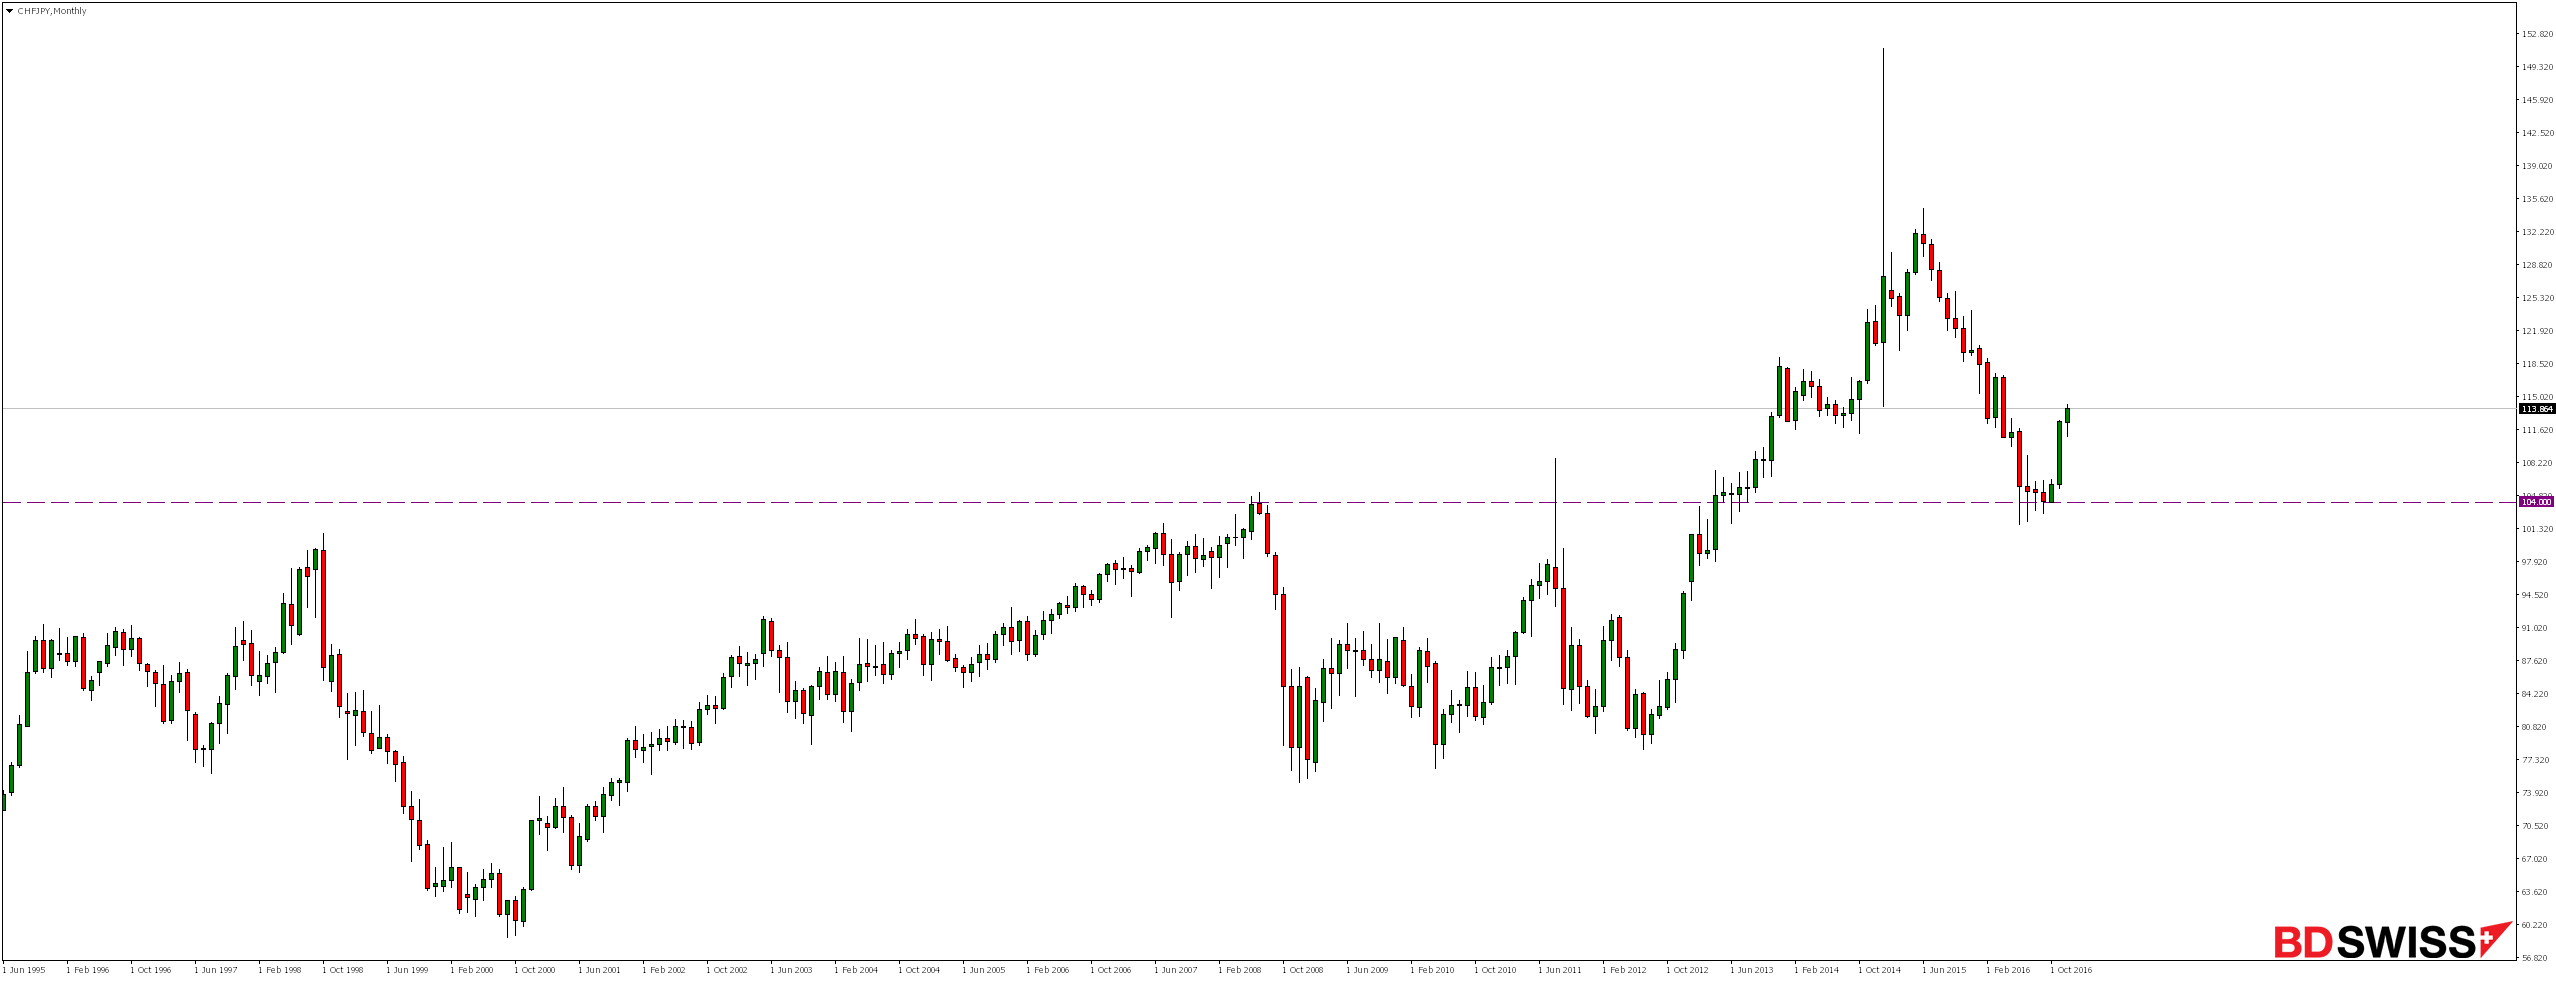 CHFJPY Monthly